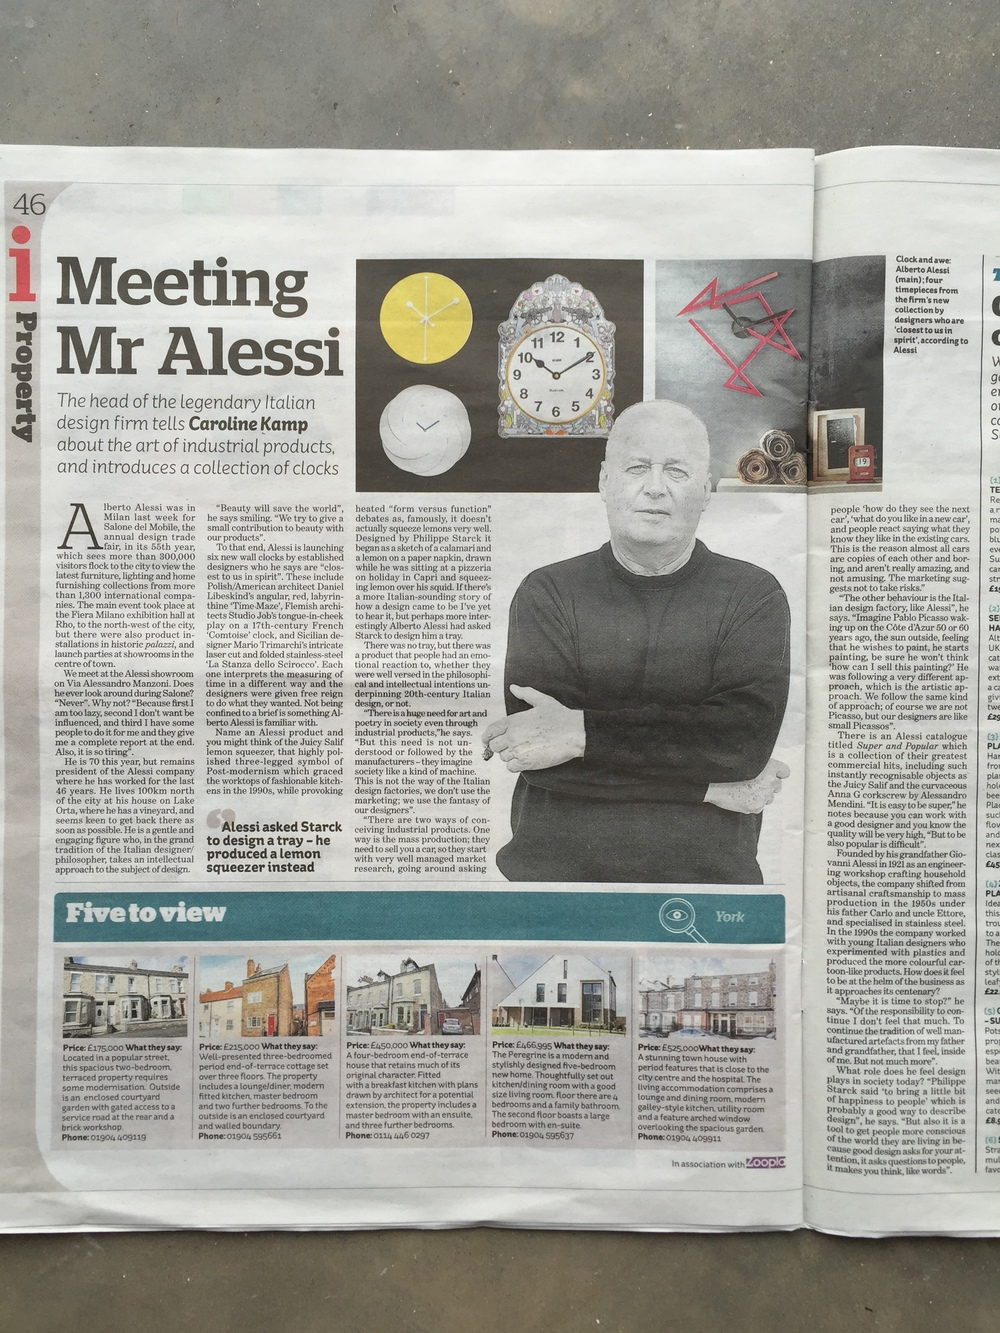 While in Milan last week I interviewed Alberto Alessi, president of the Alessi company and grandson of the founder, at their showroom on Via Alessandro Manzoni. He had some great things to say about industrial design and why he never looks around Salone del Mobile. It's published in today's i Paper.